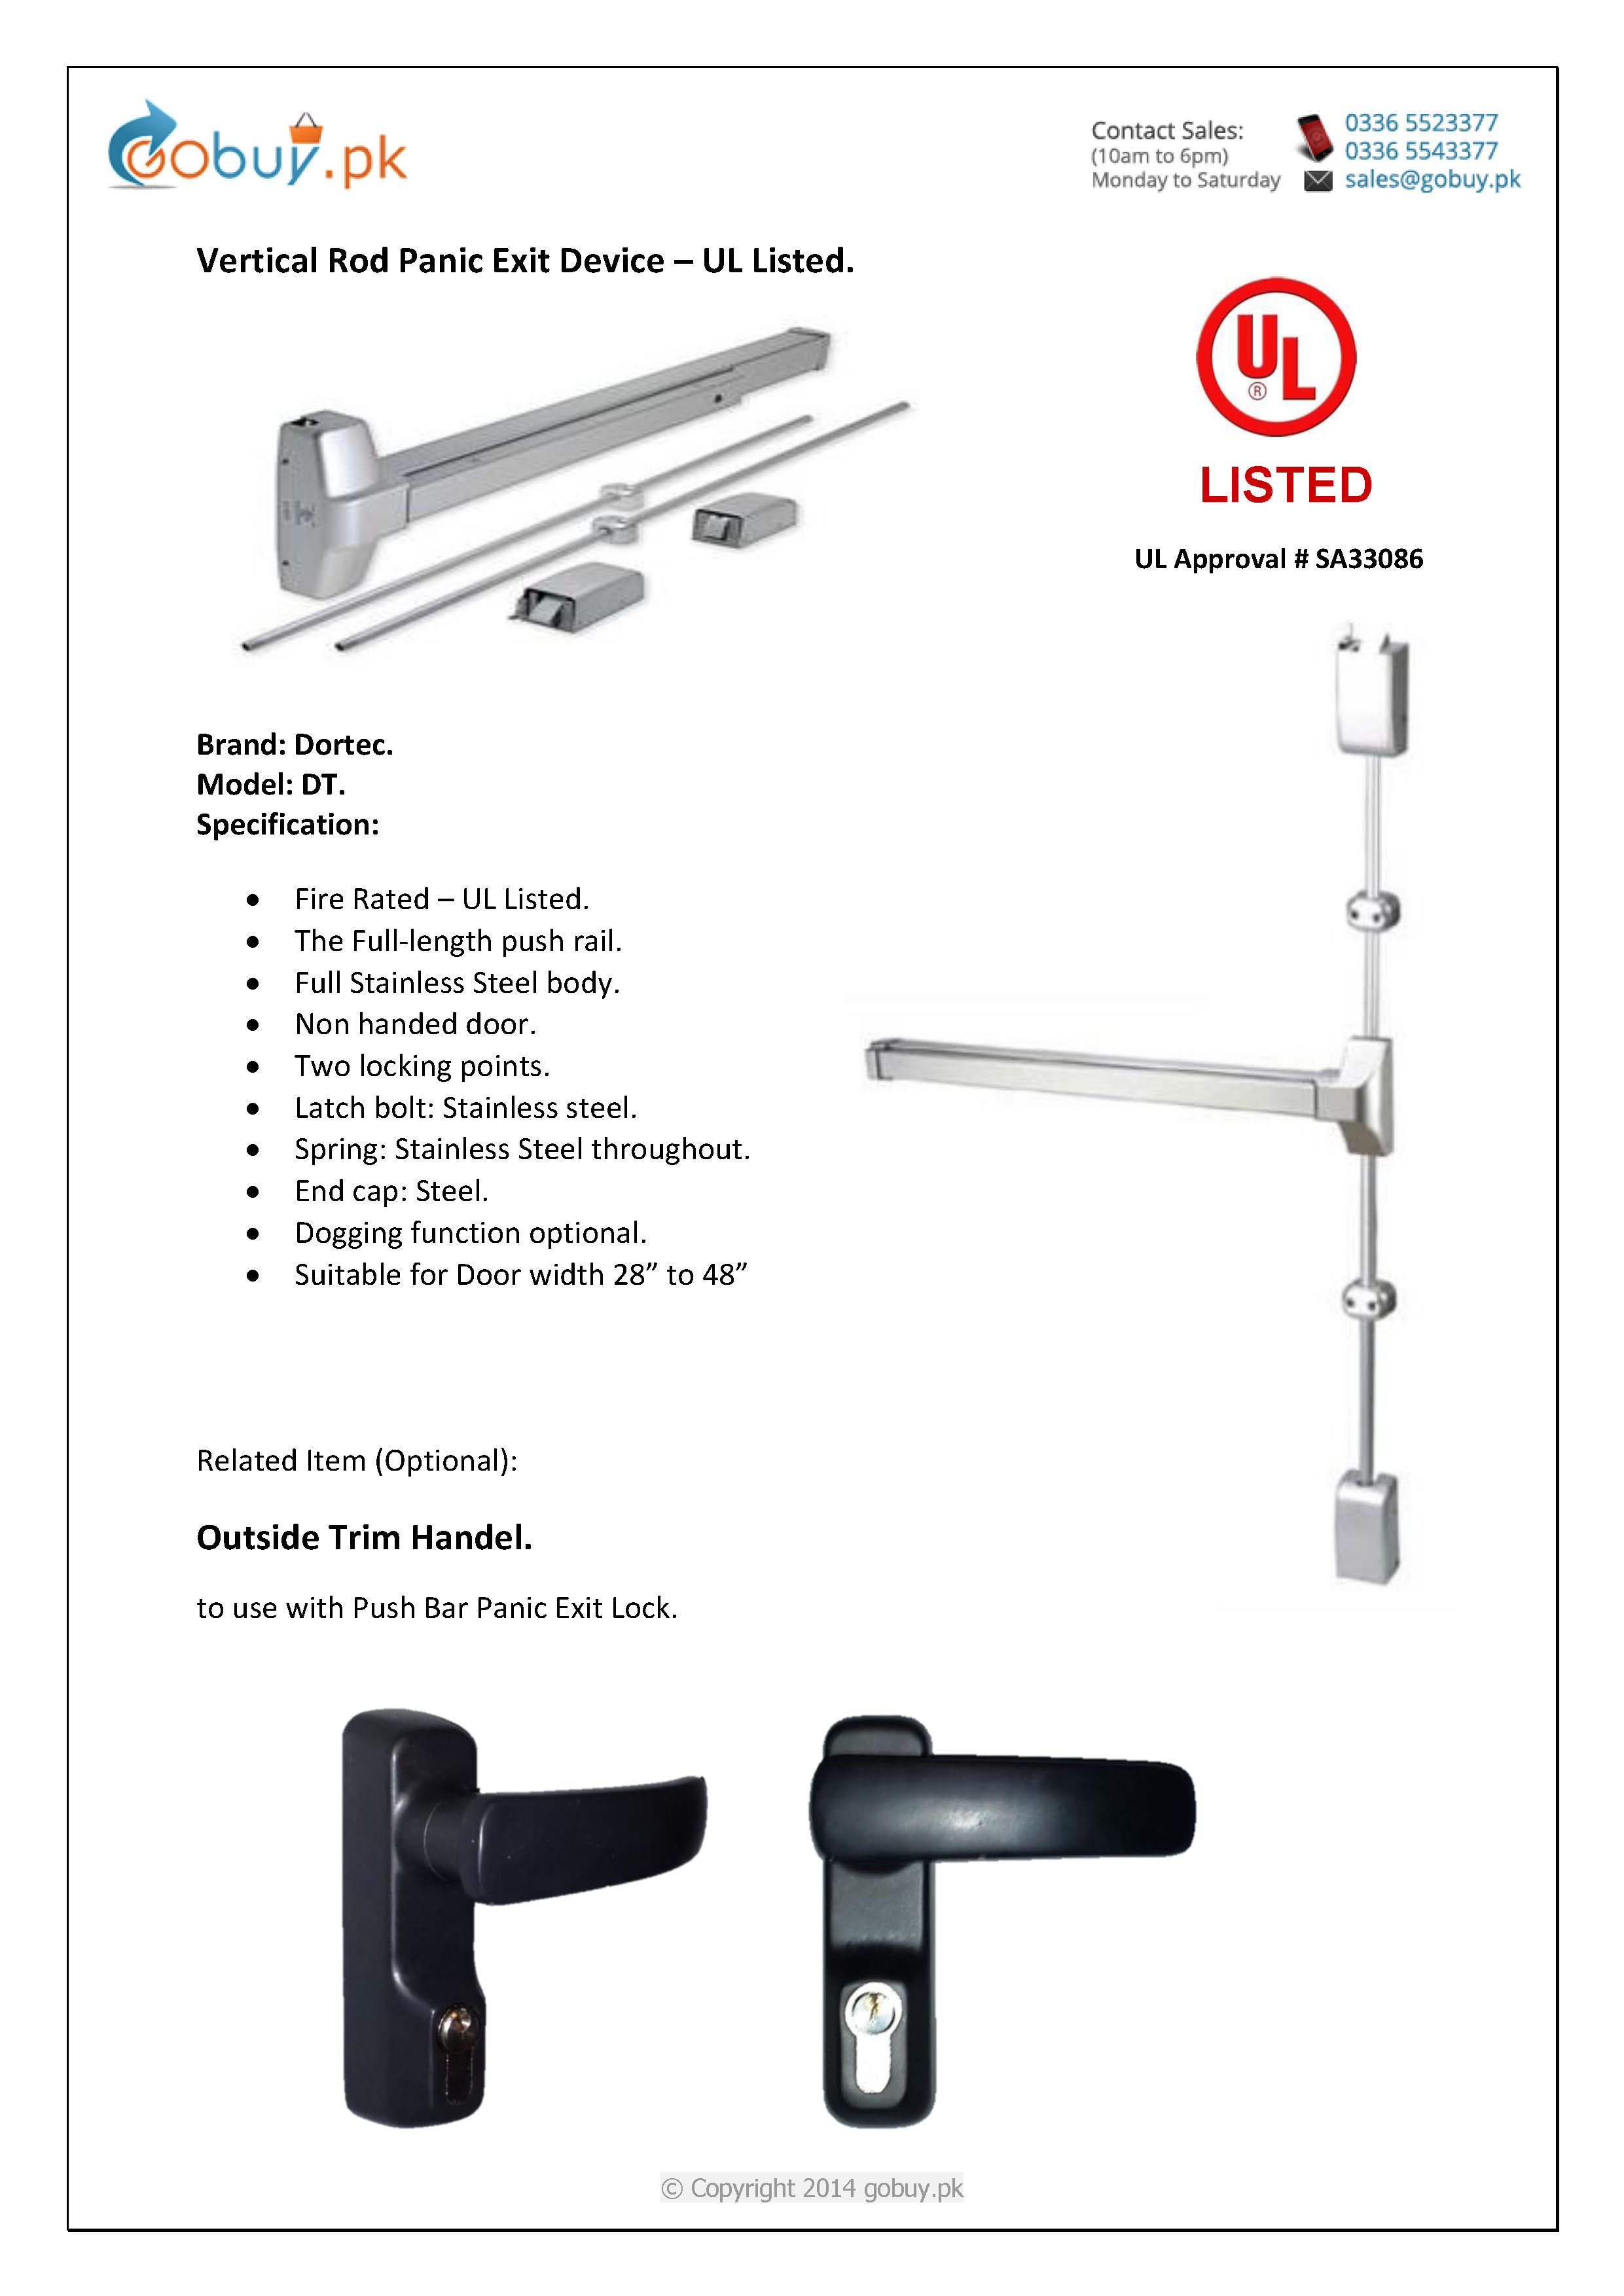 Vertical Rod Panic Exit Device Ul Listed Gobuy